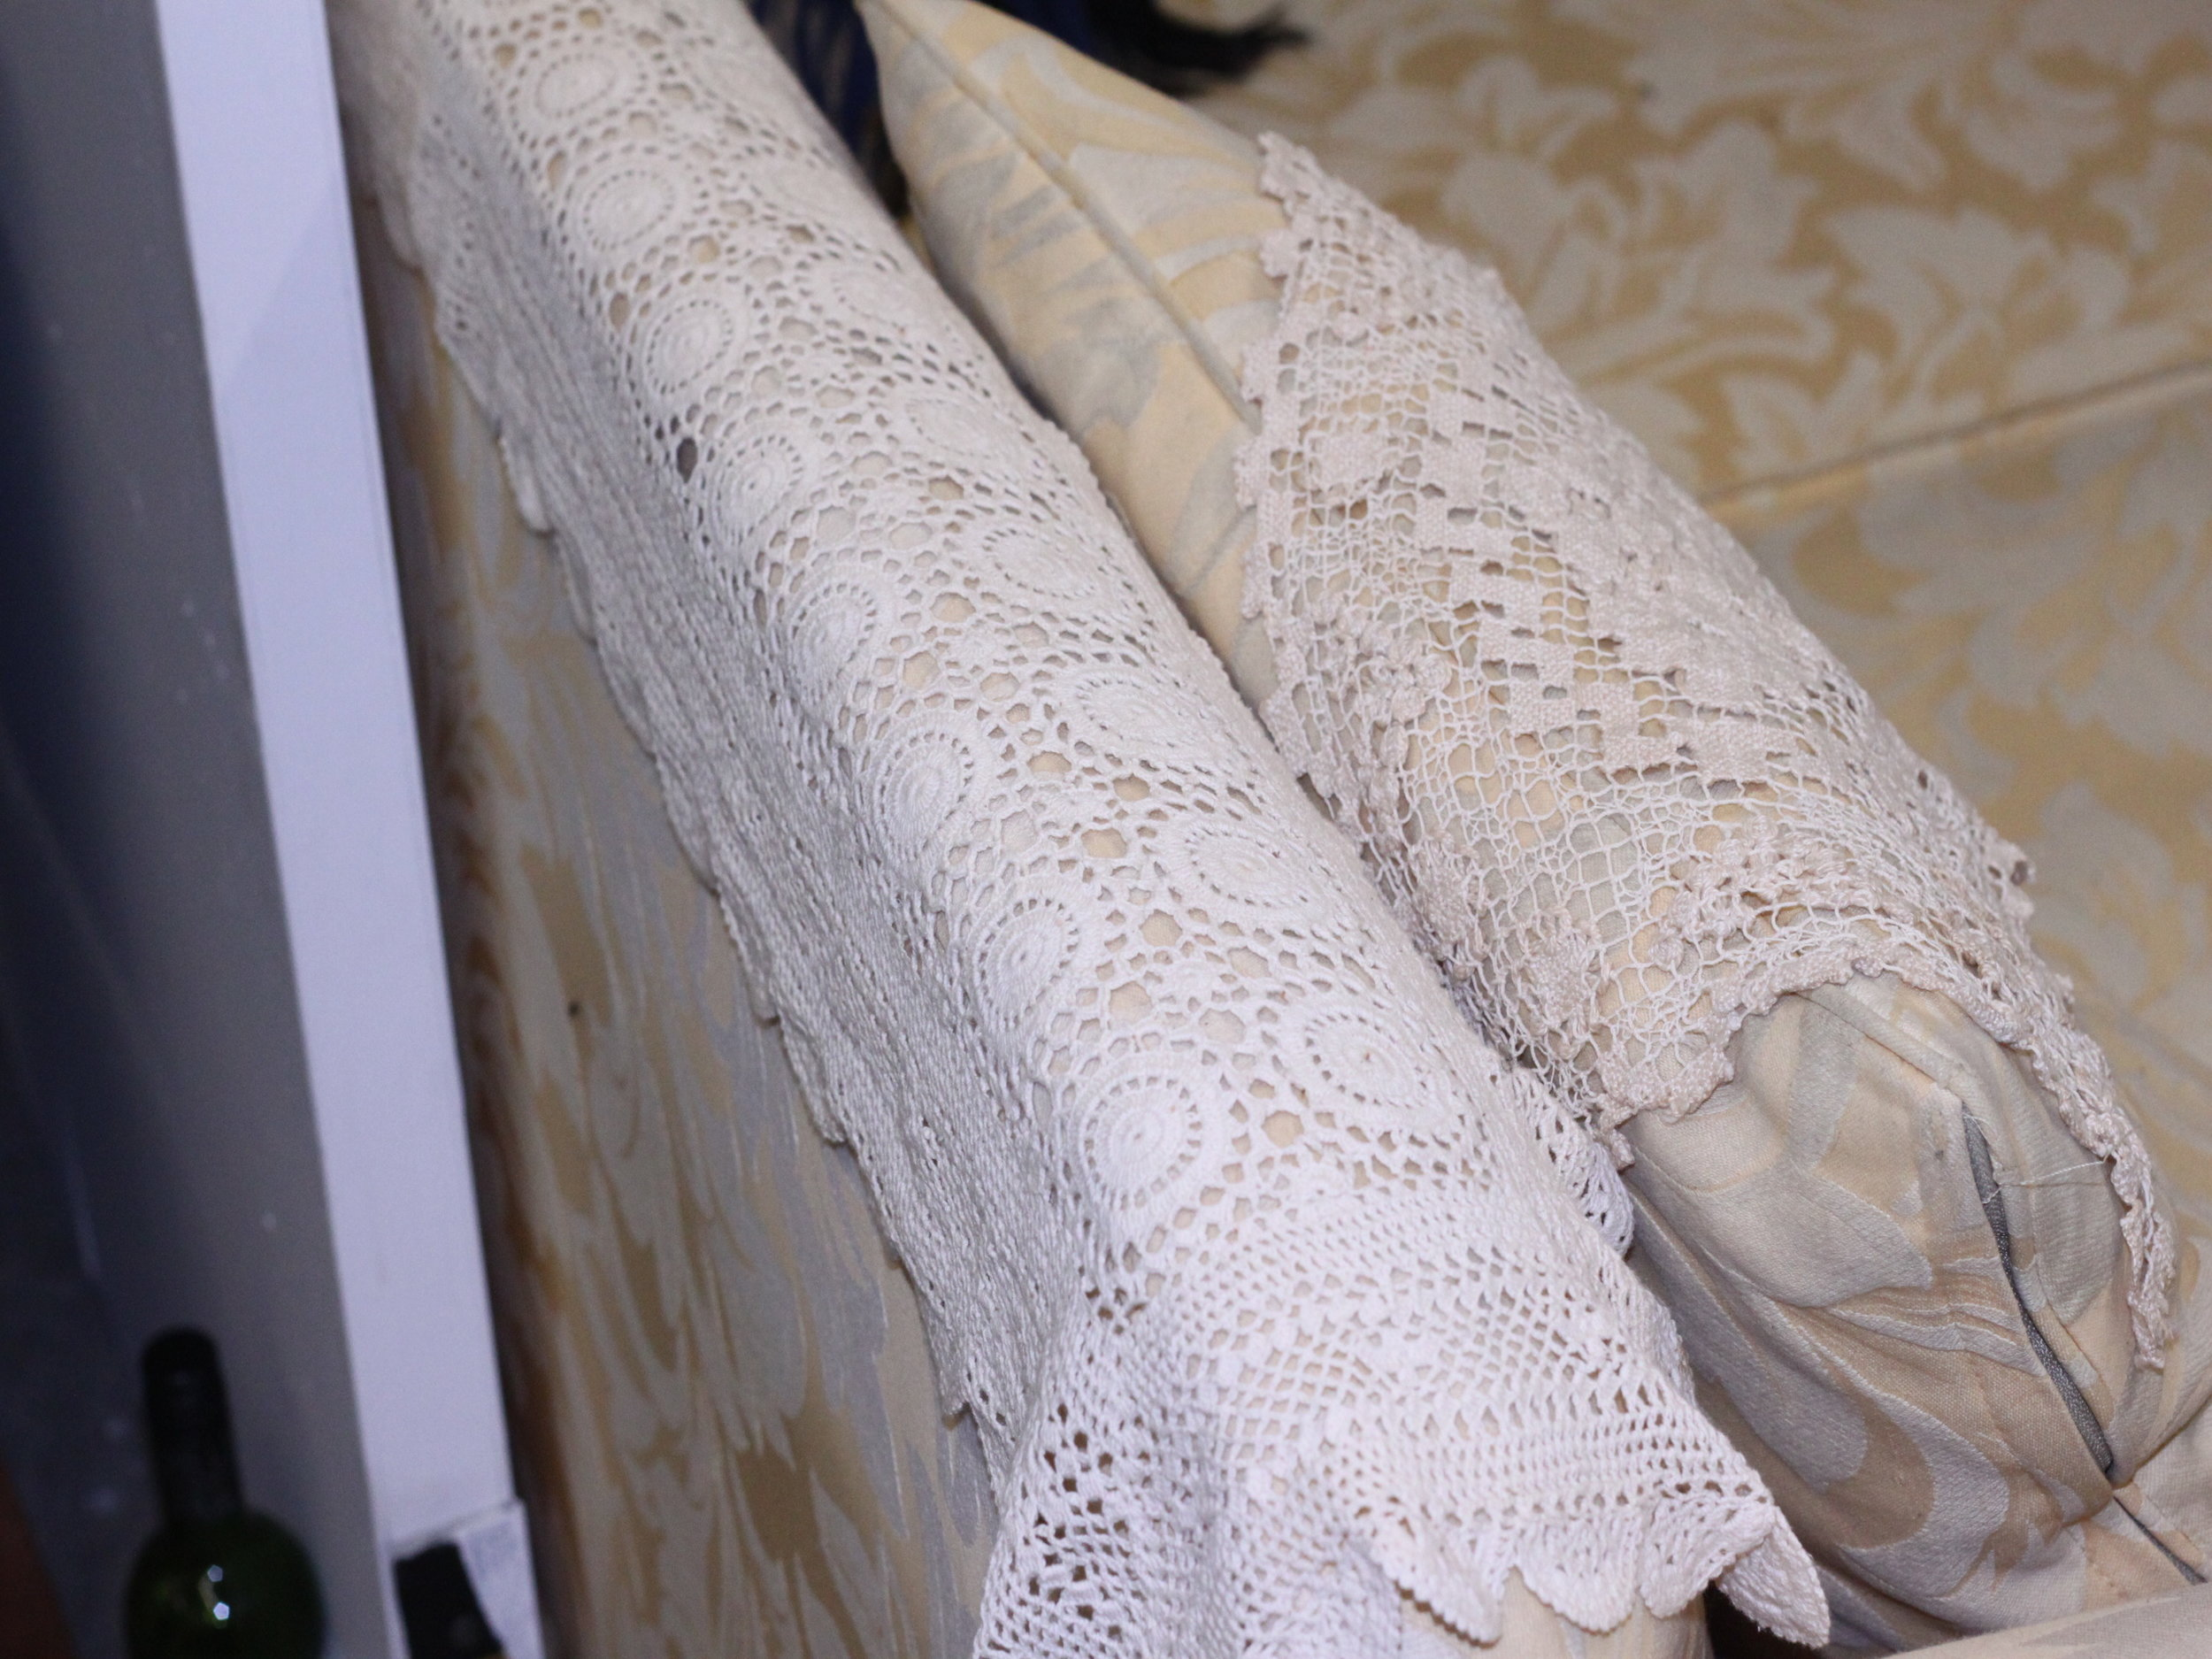 Free Gumtree Couch with Vintage Lace Doilies